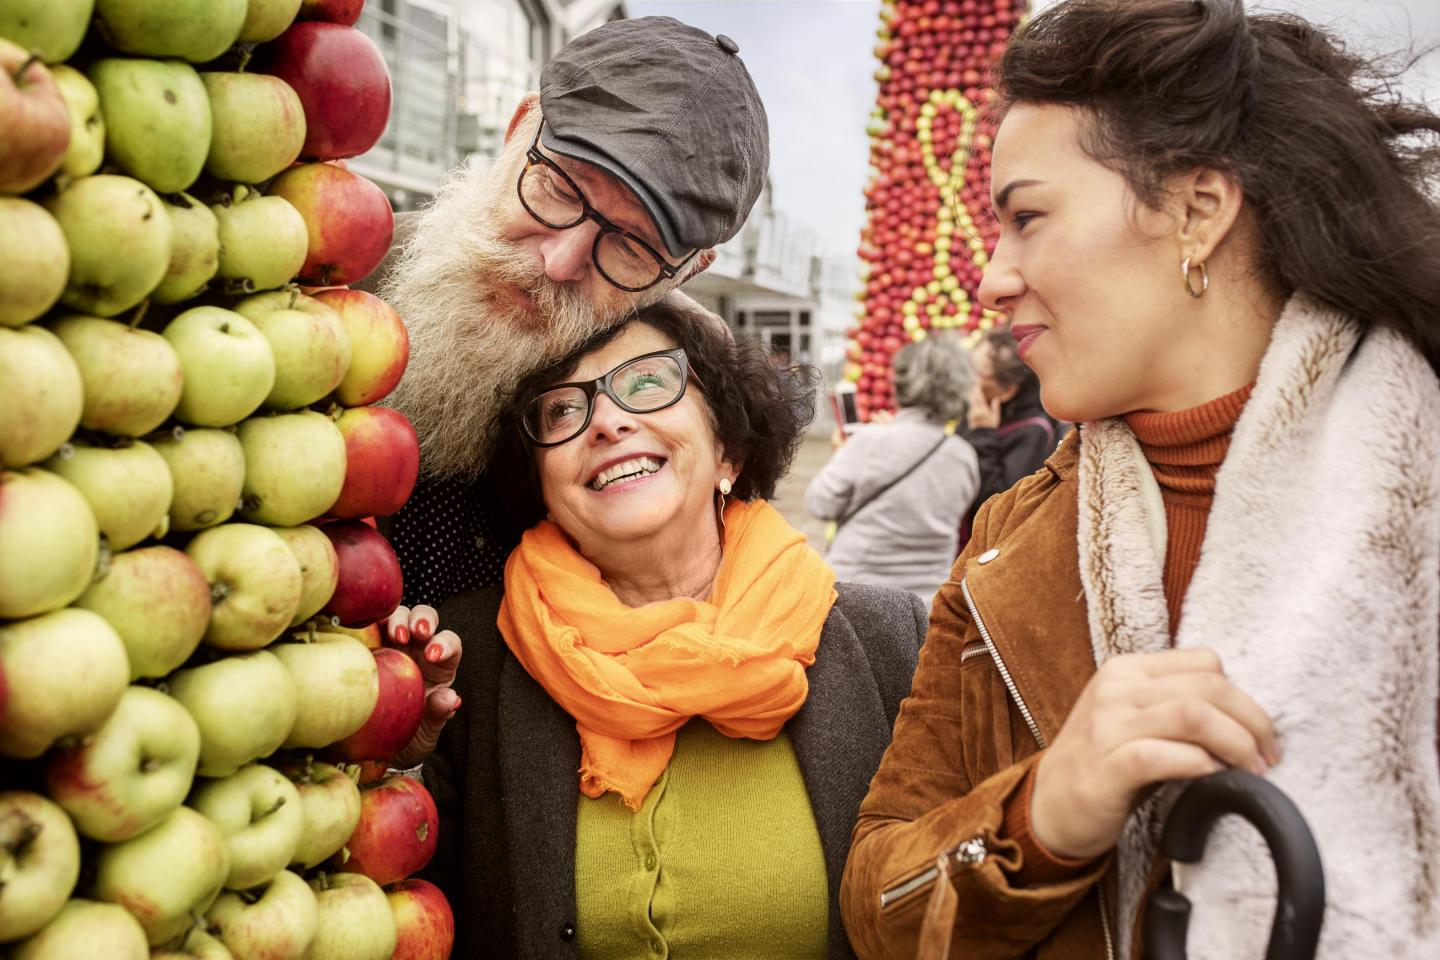 Three happy people at an apple market